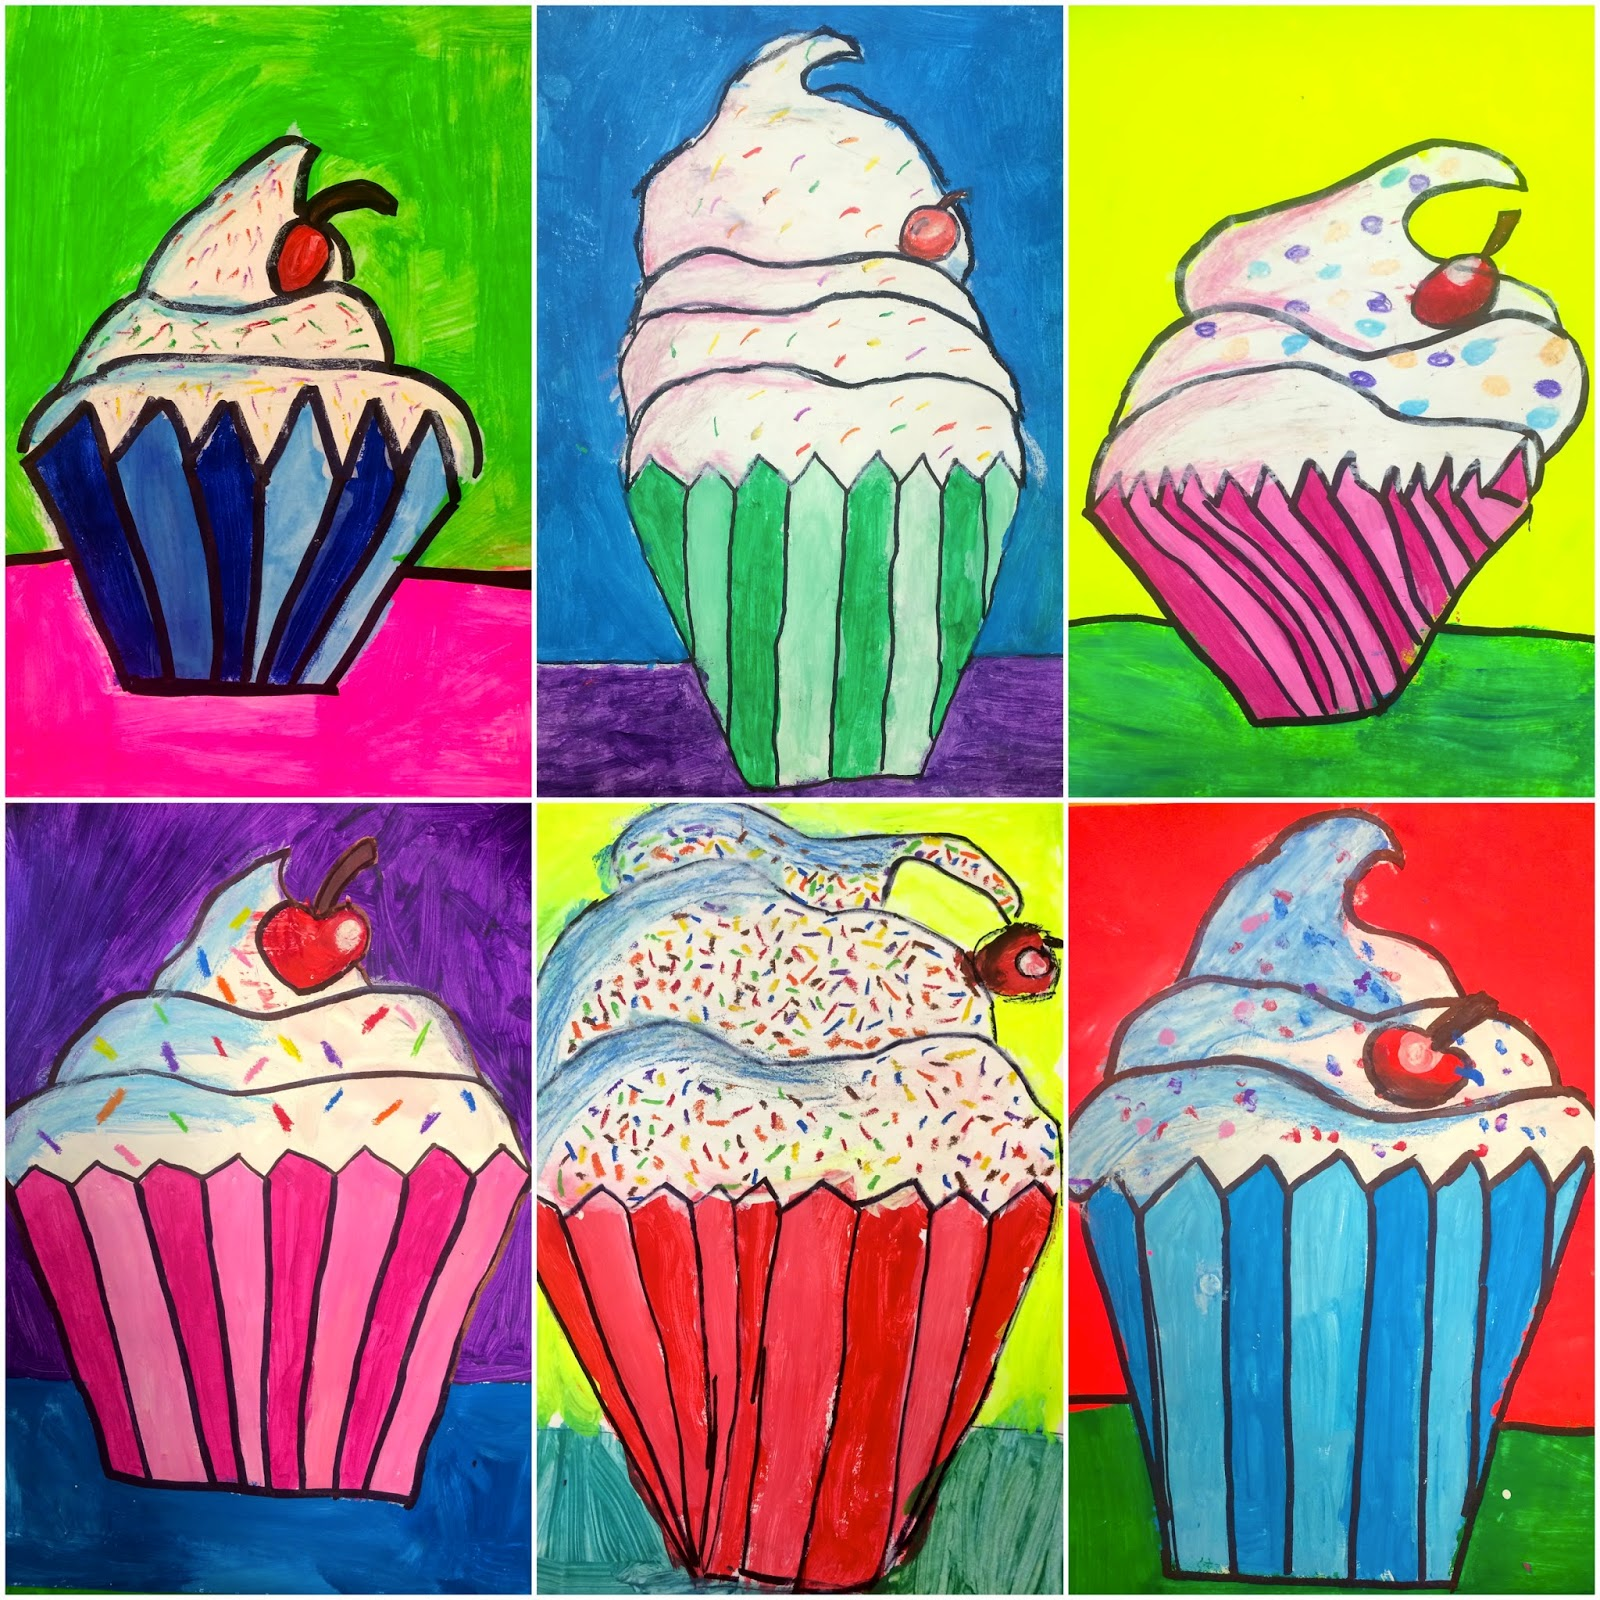 Art Eat Tie Dye Repeat 4th Grade Wayne Thiebaud Cupcakes